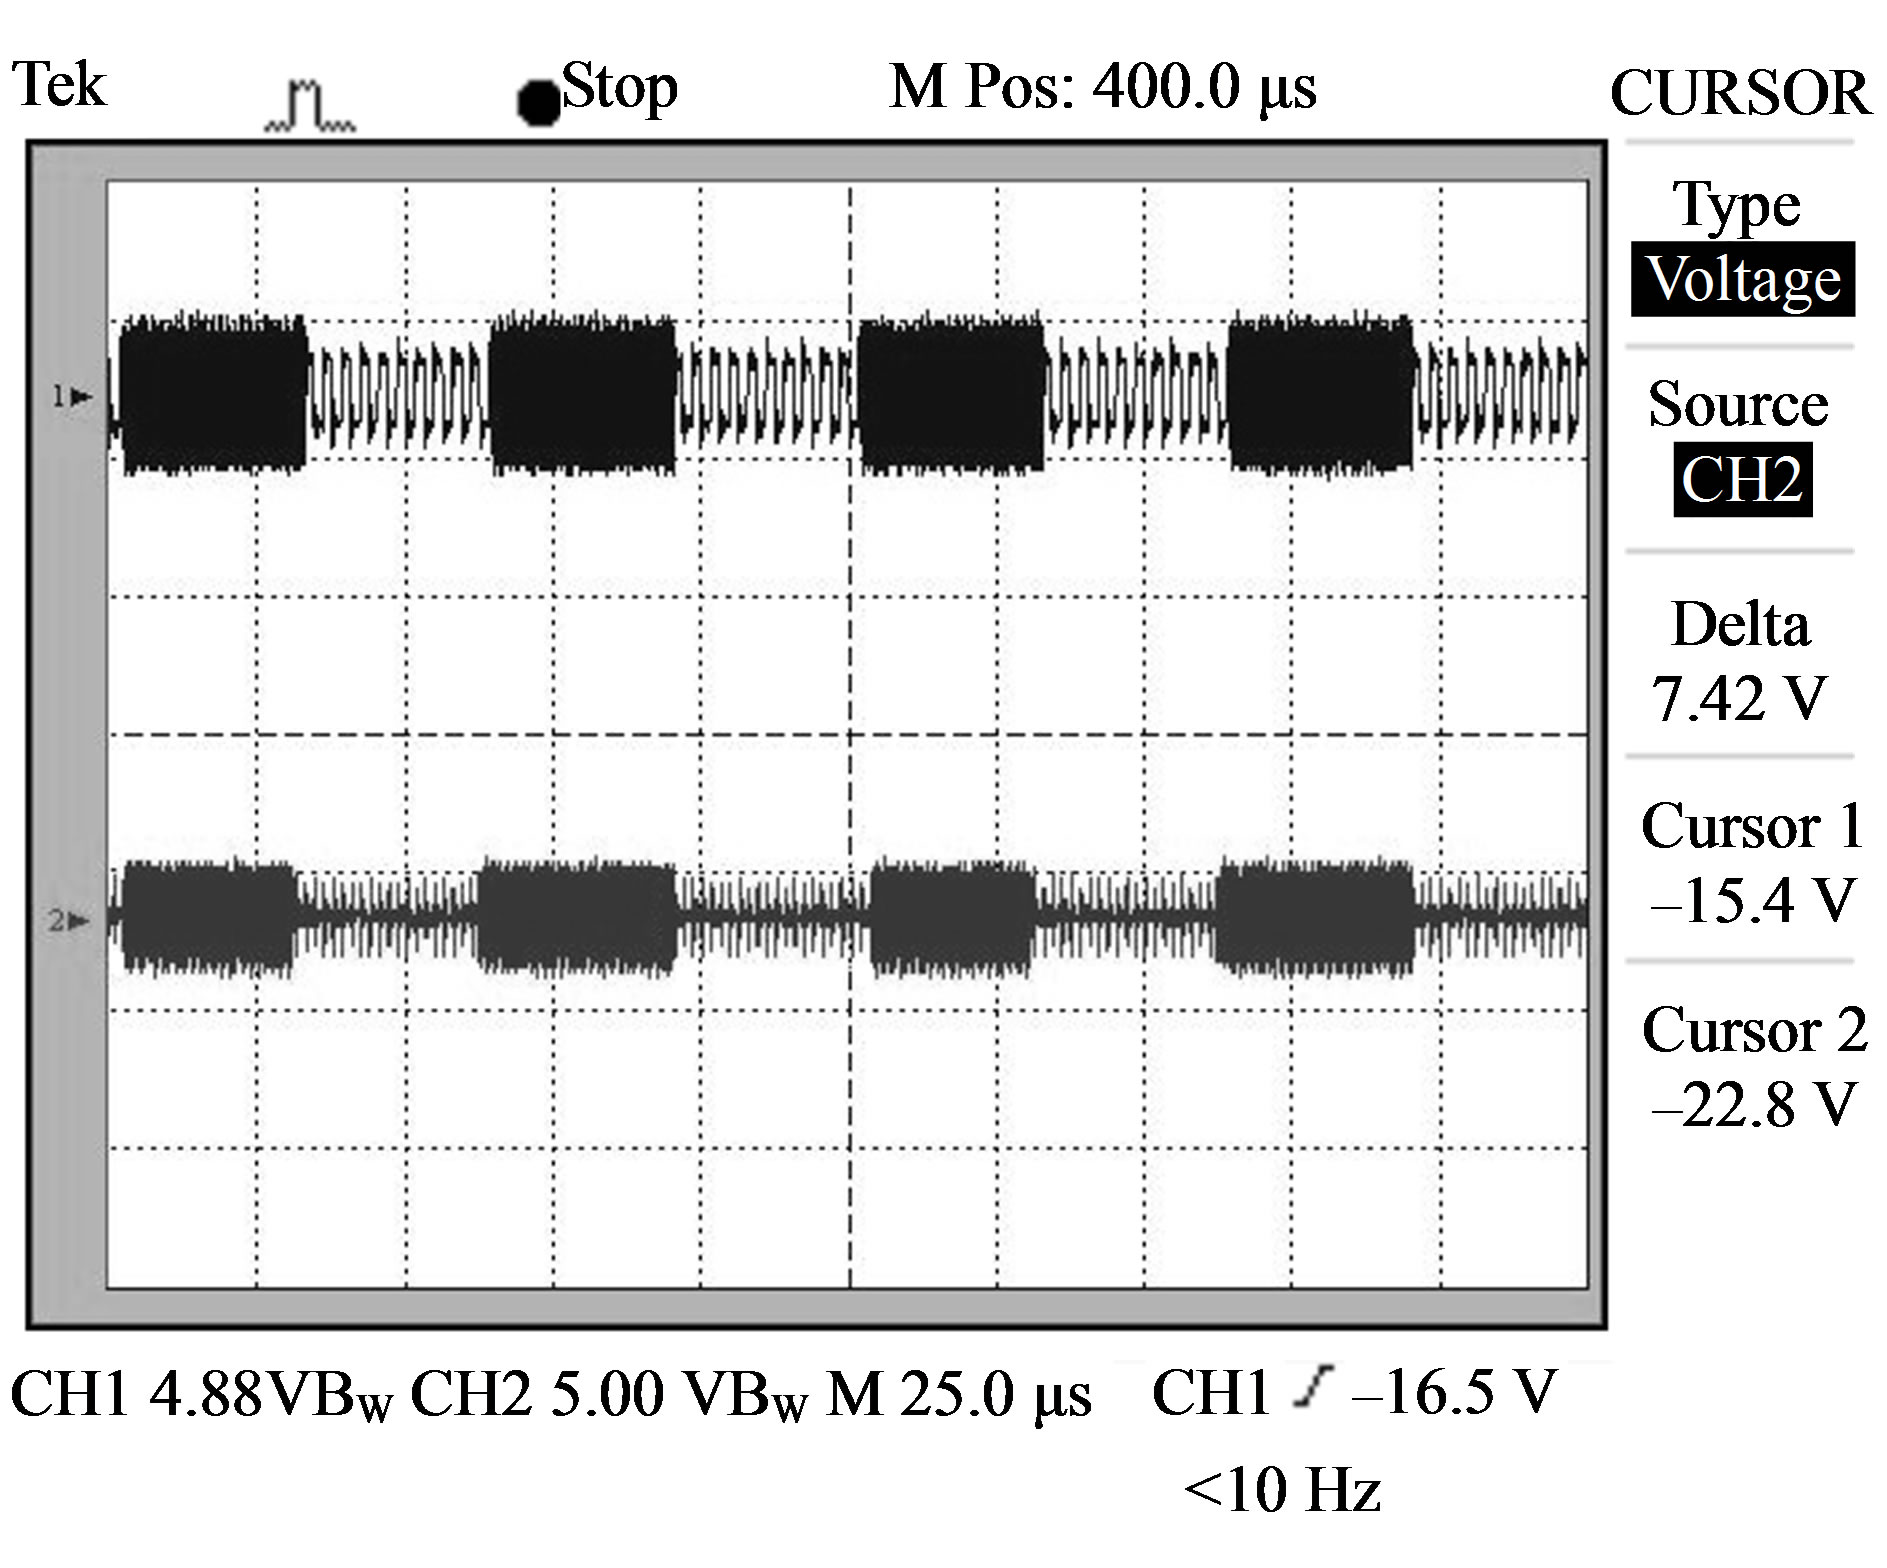 Design Of Bidirectional Coupling Circuit For Broadband Power Line Bcd To Binary Converter Electronics Telecommunication Fsk Modulated Waveform After The Filter Transmitter Side Coupler